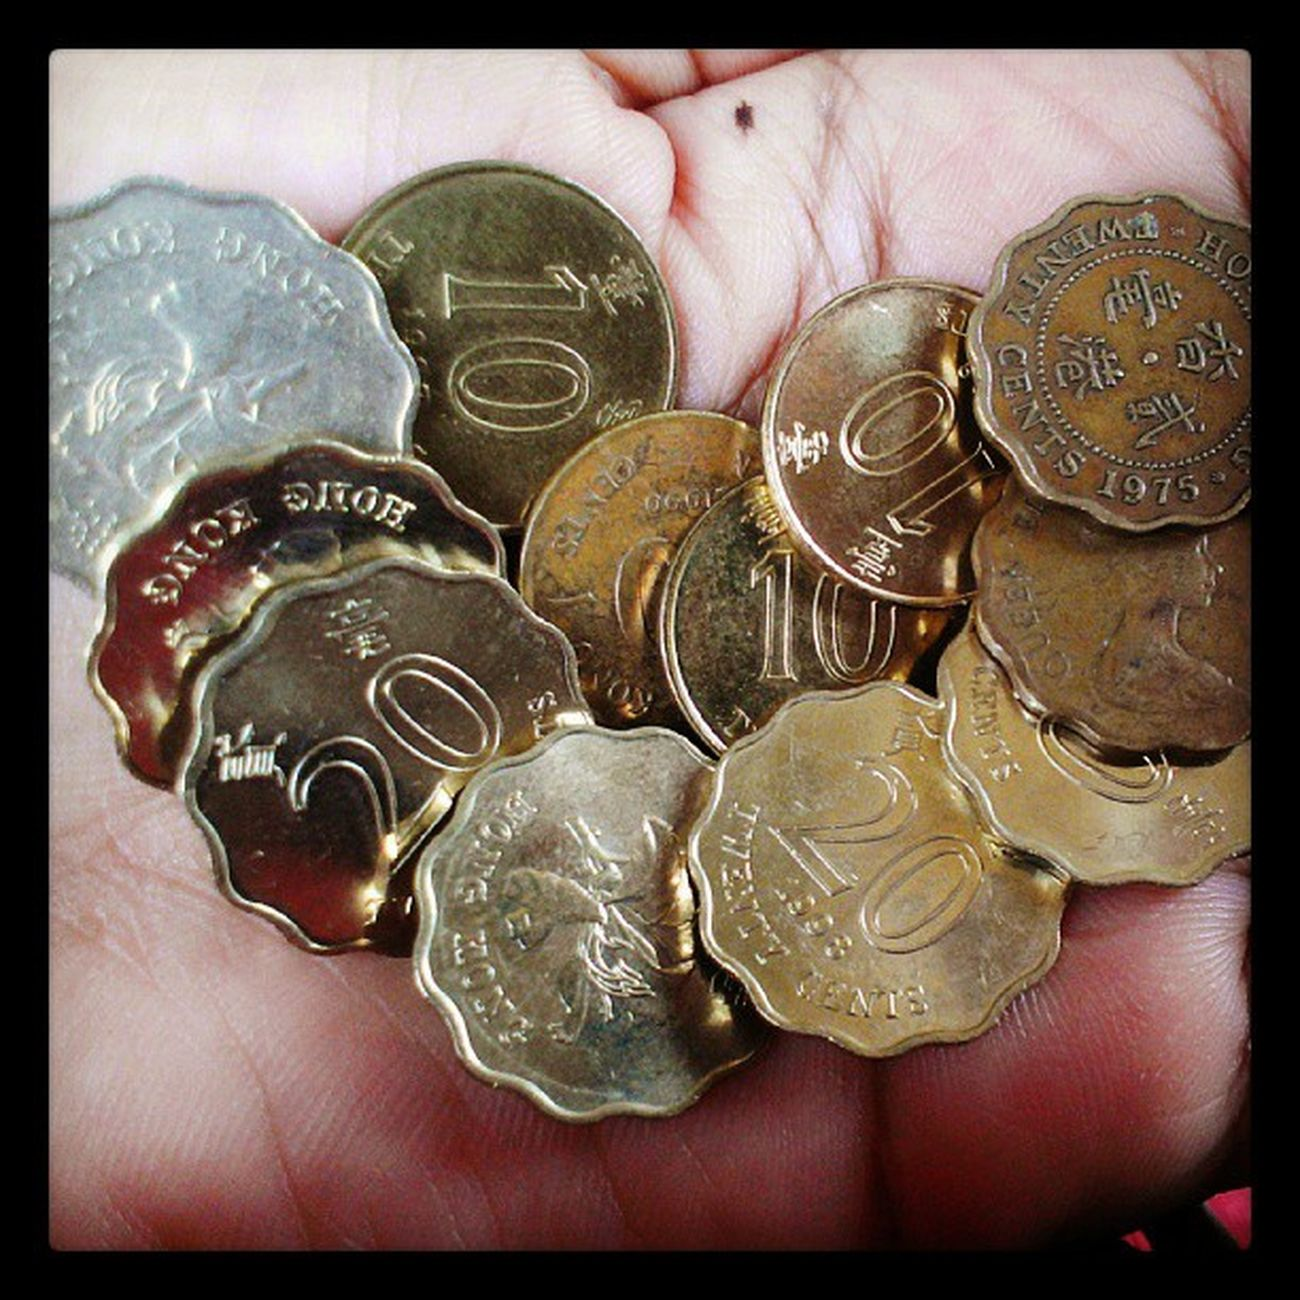 Small coins for take bus Reallifehk @reallifehk Localiiz Instapic HongKong bmihk